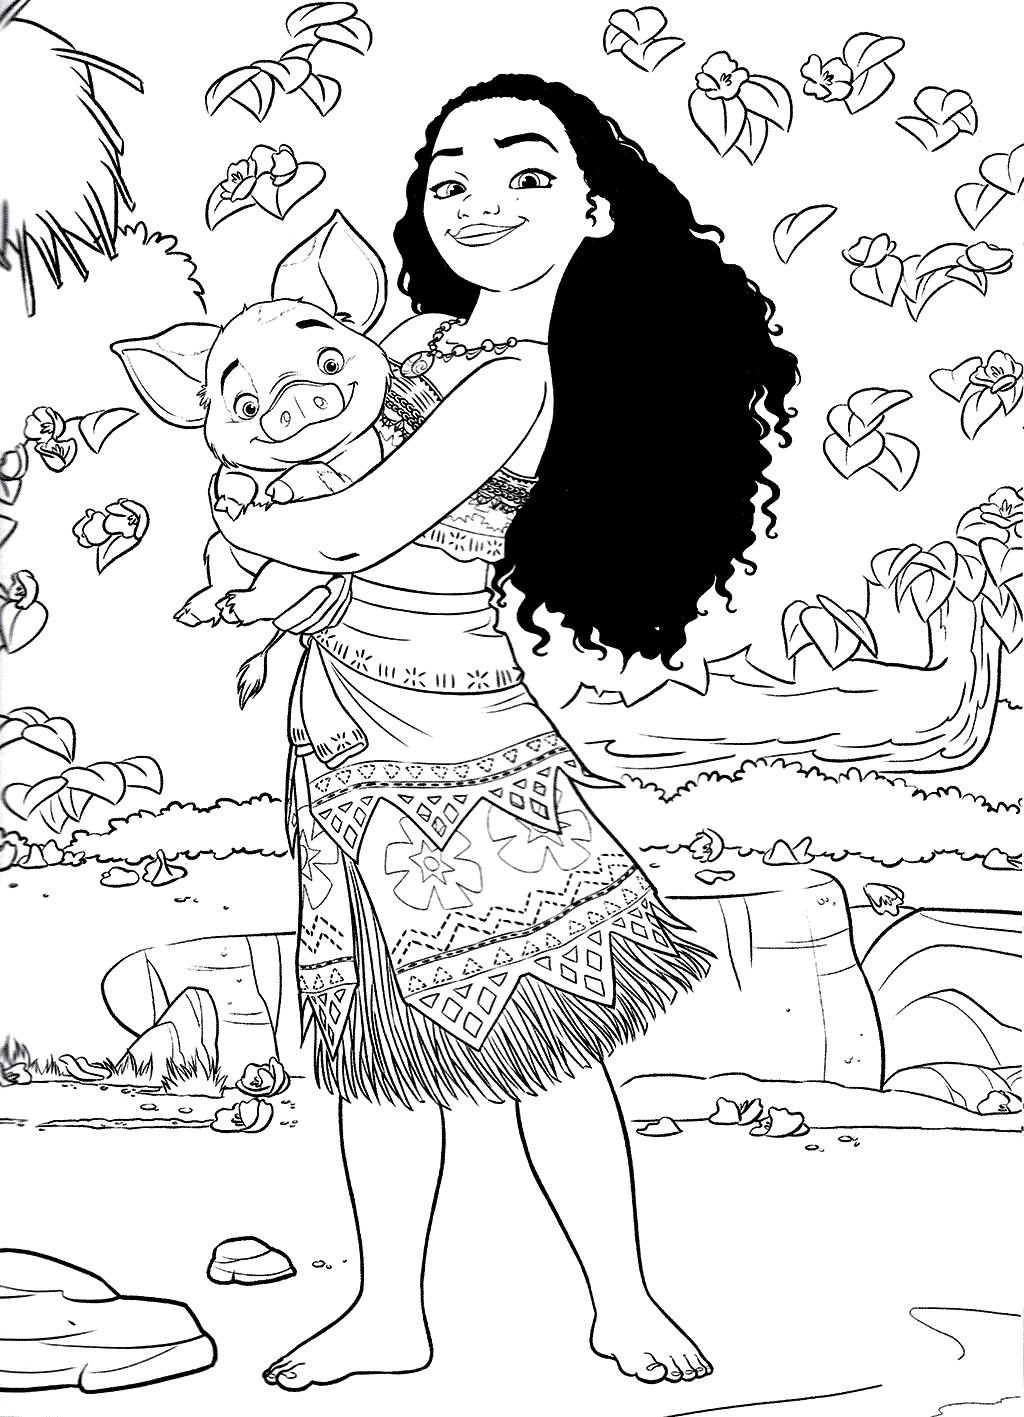 Top 10 Moana Coloring Pages Free Printables Moana Coloring Pages Moana Coloring Disney Coloring Pages